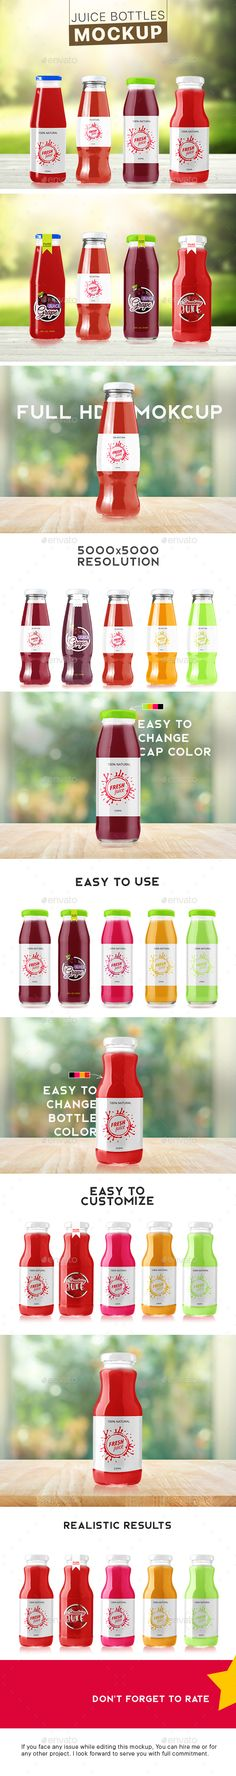 4 #Colourable Juice Bottle #Mockup - Food and Drink #Packaging